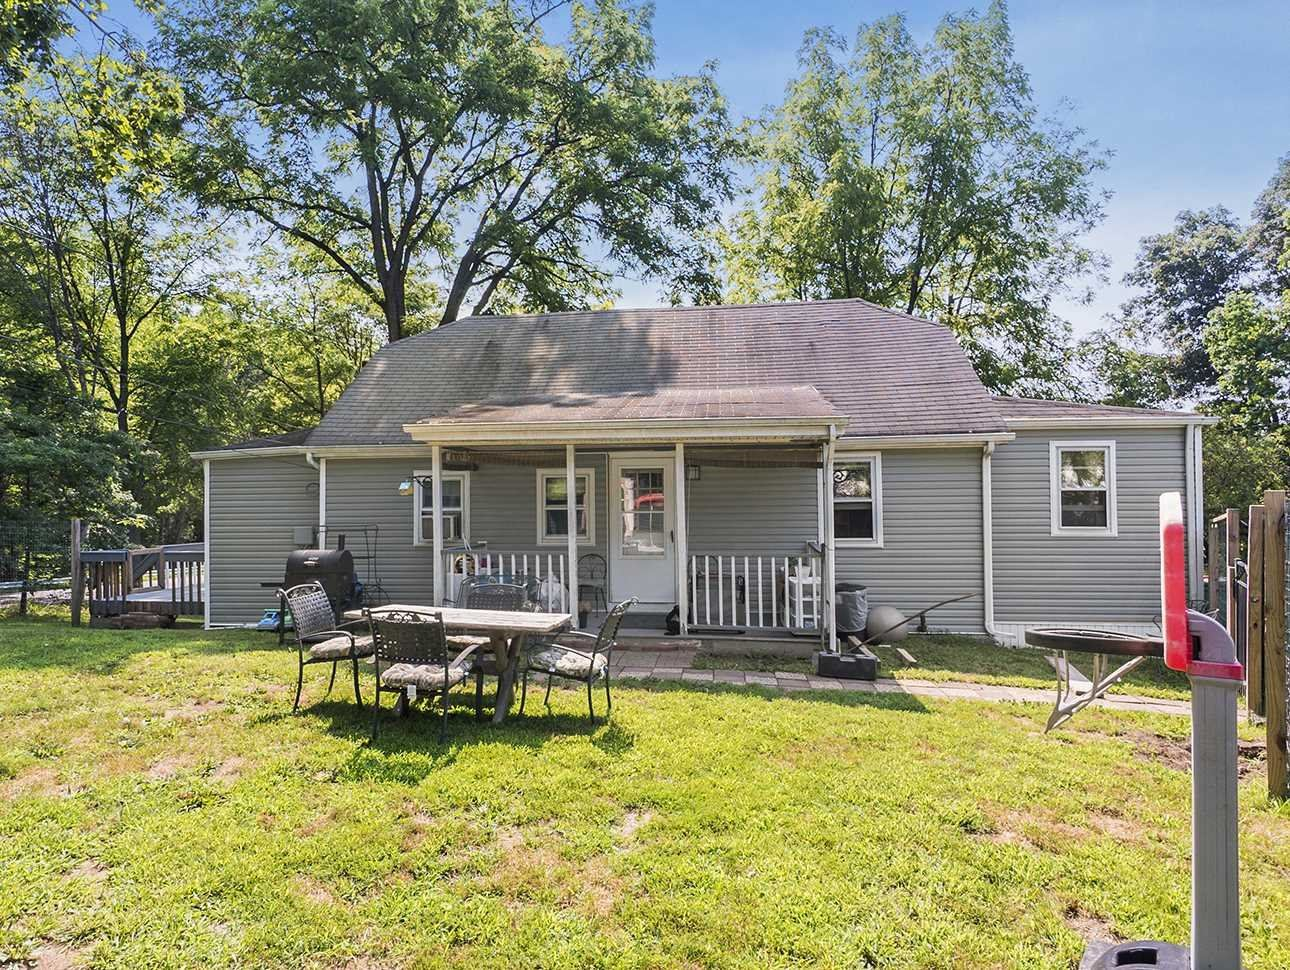 195 OLD KETCHAMTOWN RD, Wappinger, NY 12590 - #: 387605